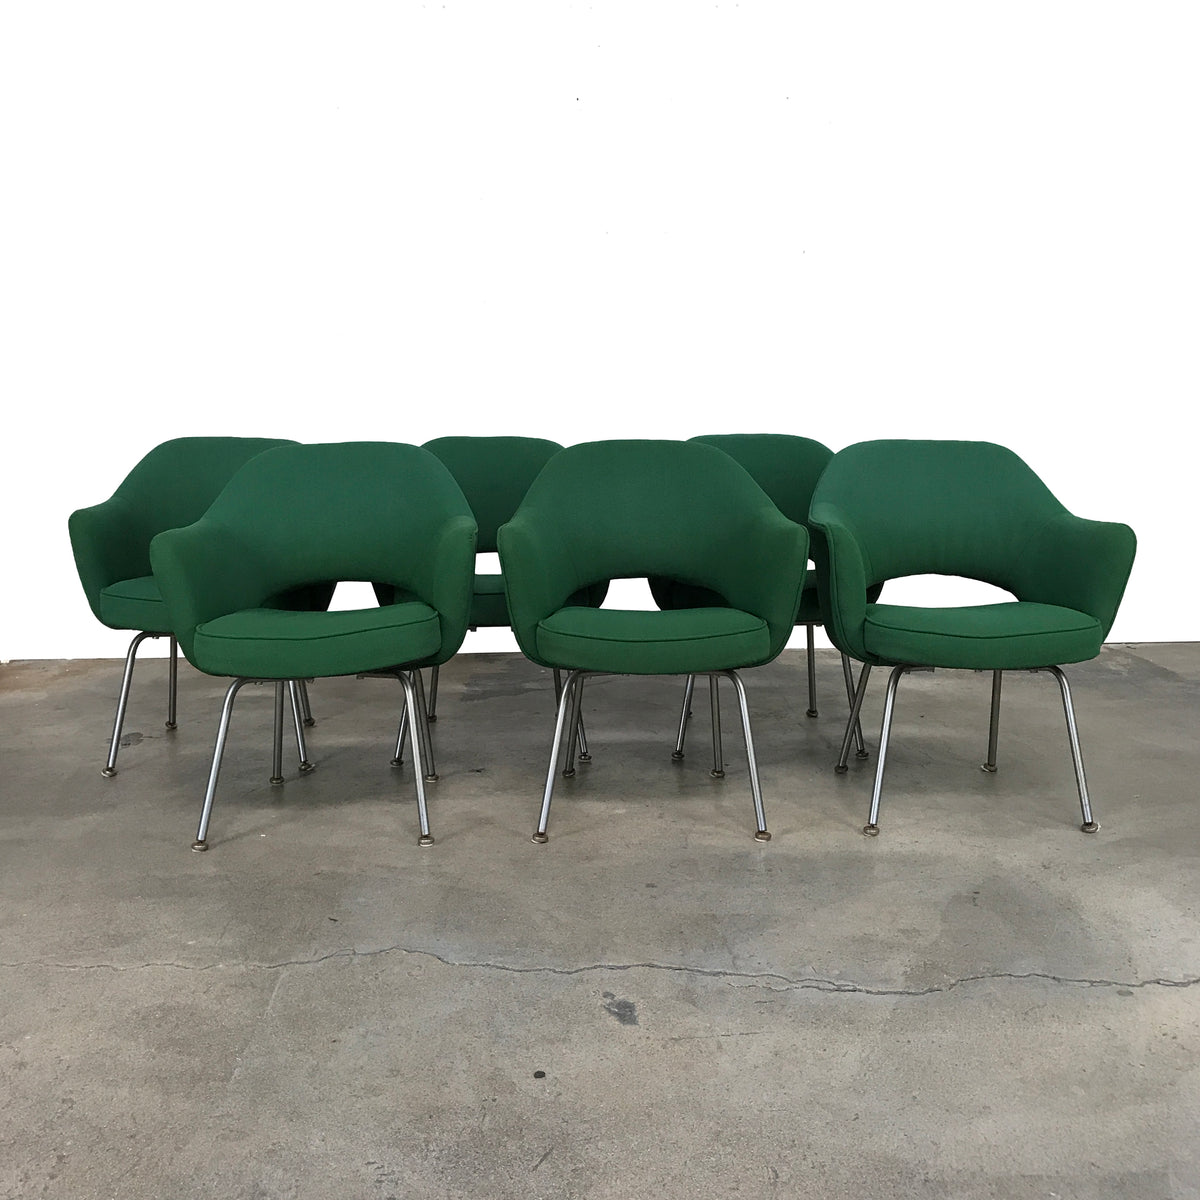 Knoll Green Fabric Saarinen Executive Armchair by Eero Saarinen